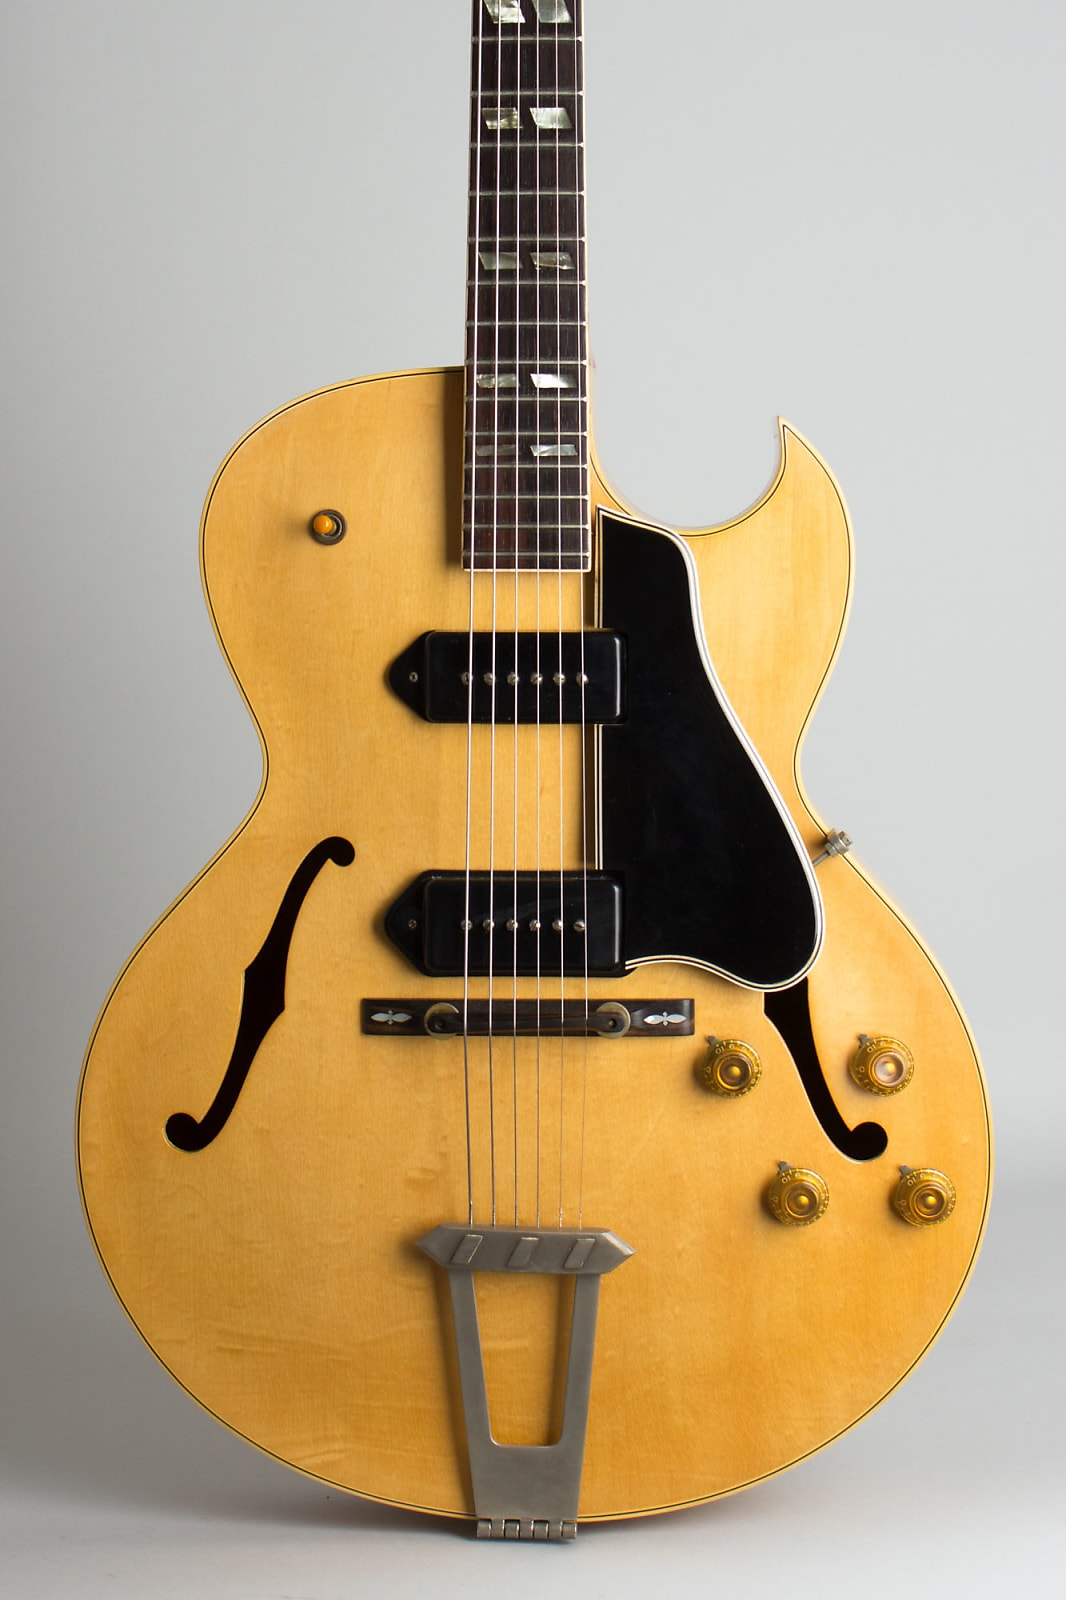 Gibson  ES-175DN Arch Top Hollow Body Electric Guitar (1956), ser. #A-23210, black tolex hard shell case.